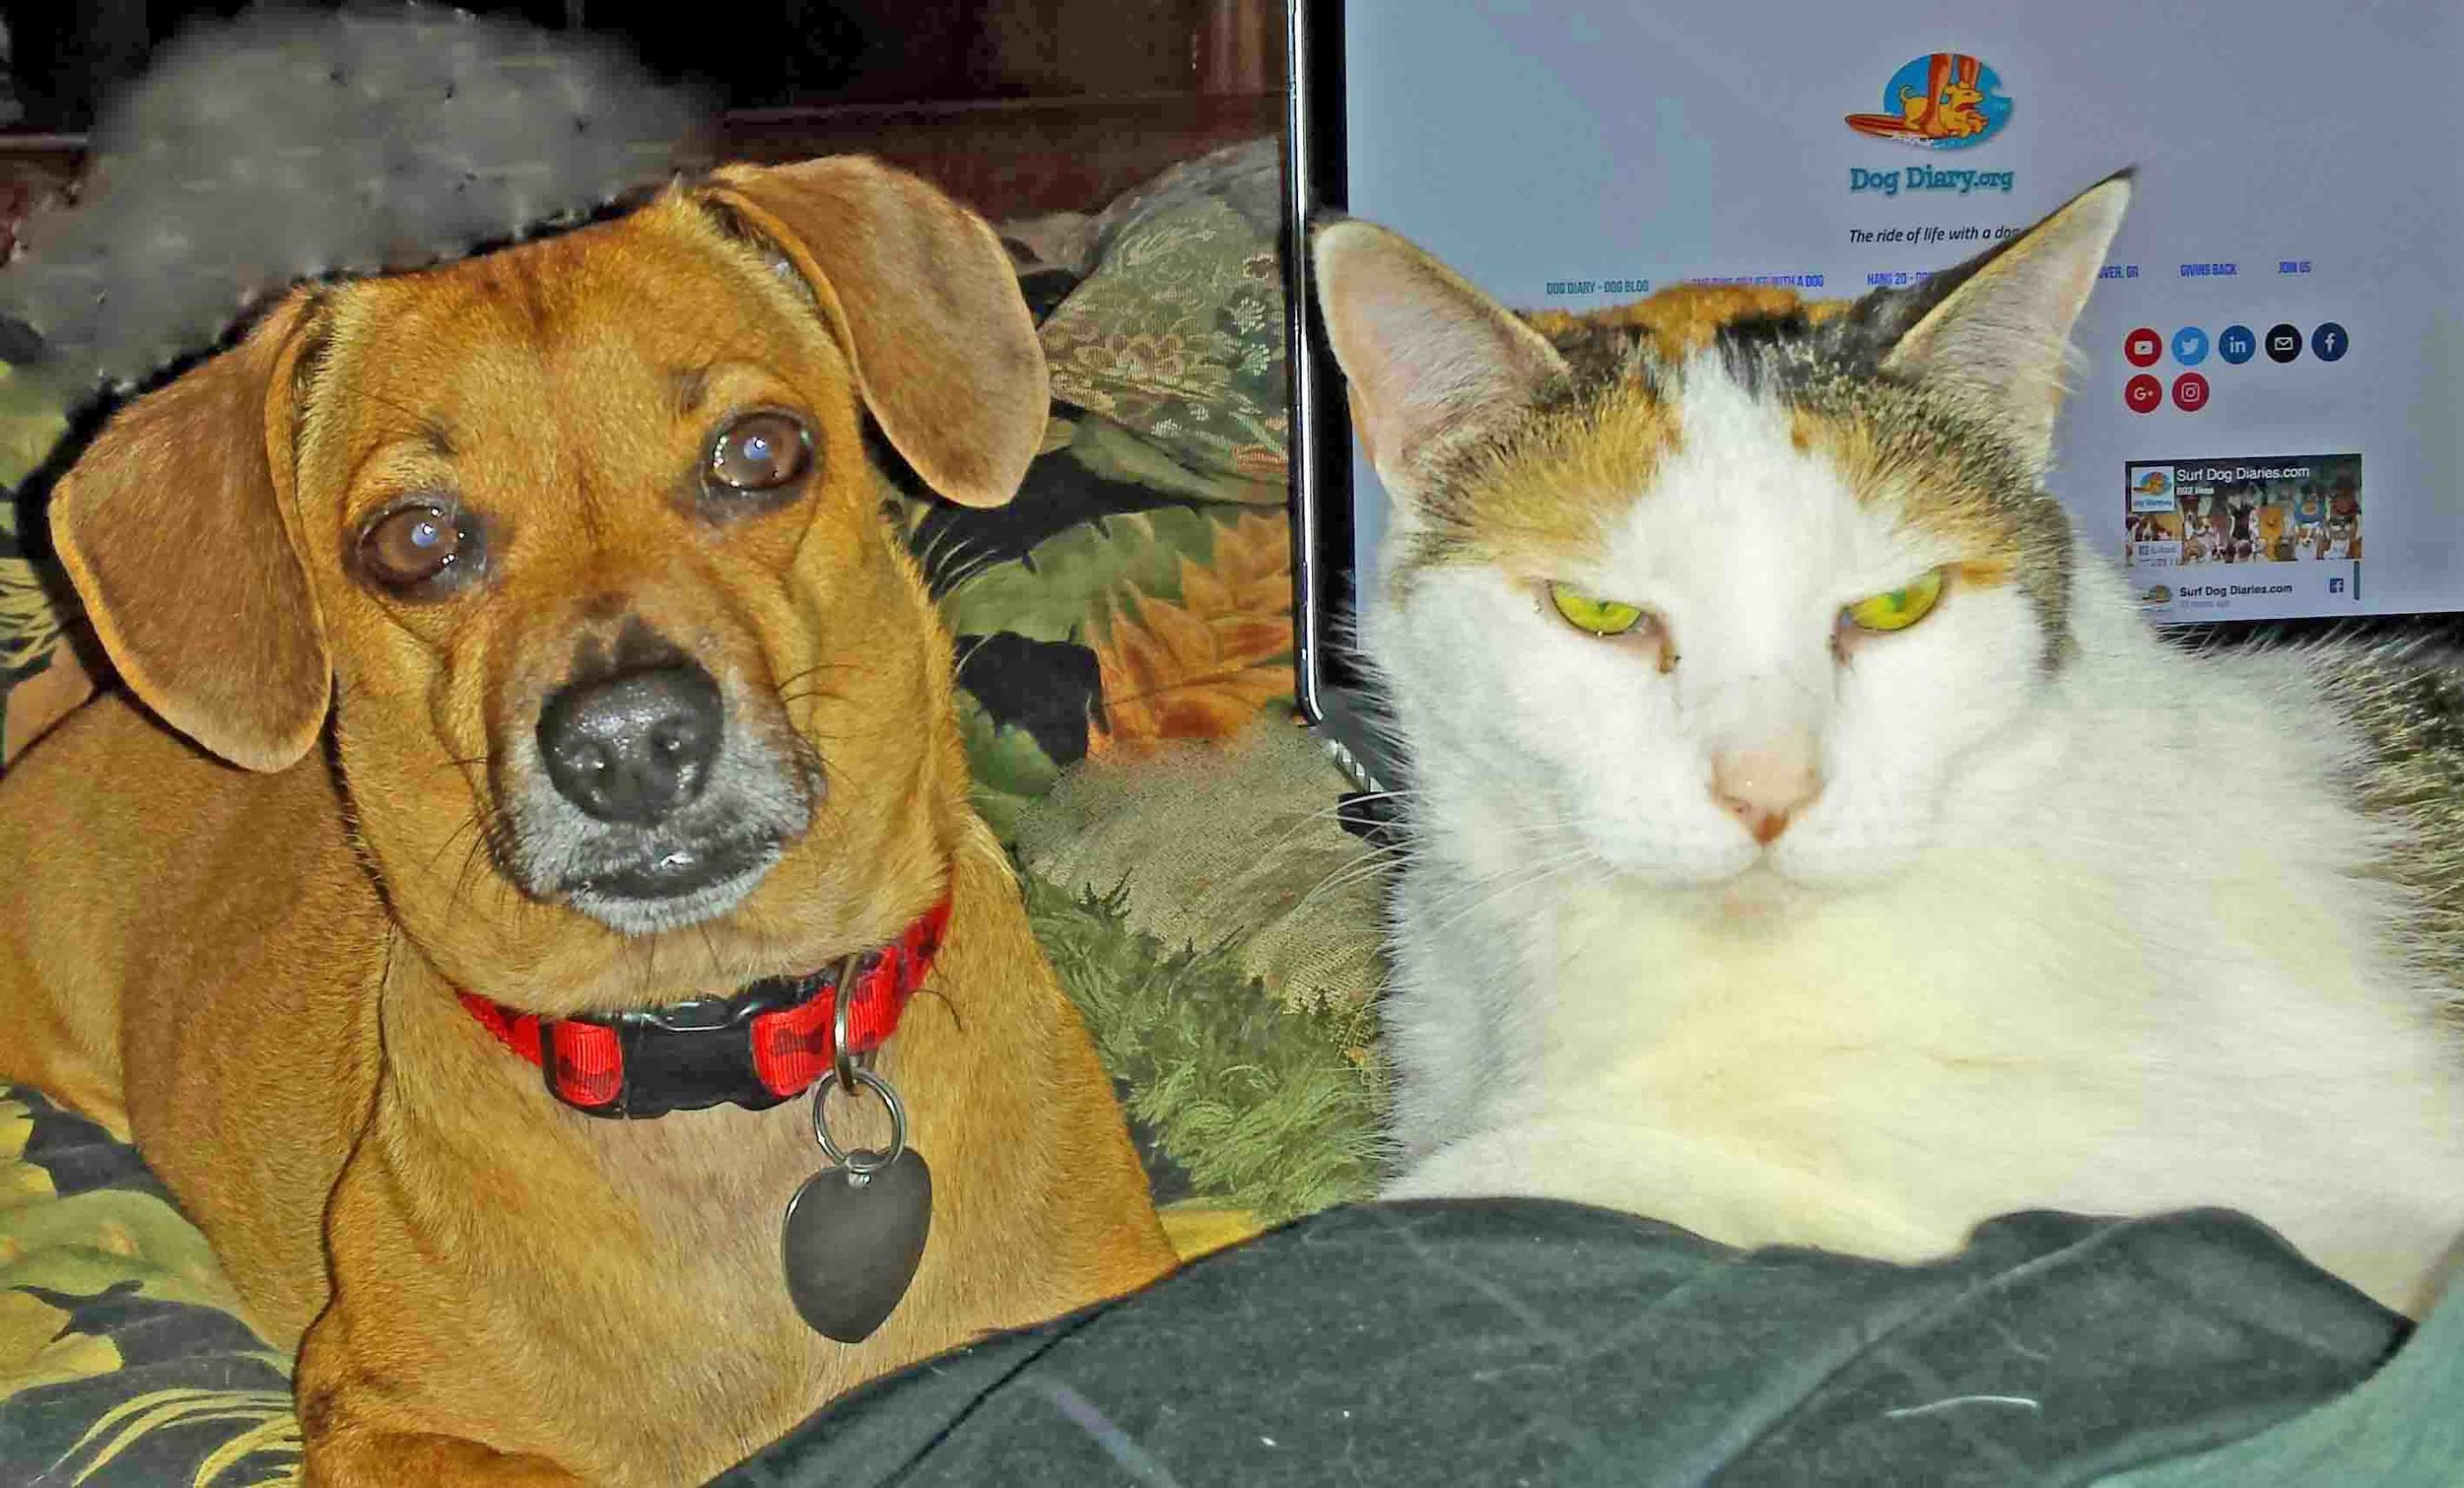 Doodle and Tia, dog and cat writers of  Surf Dog Diaries.  Photo: (c) Barb Ayers, DogDiary.org